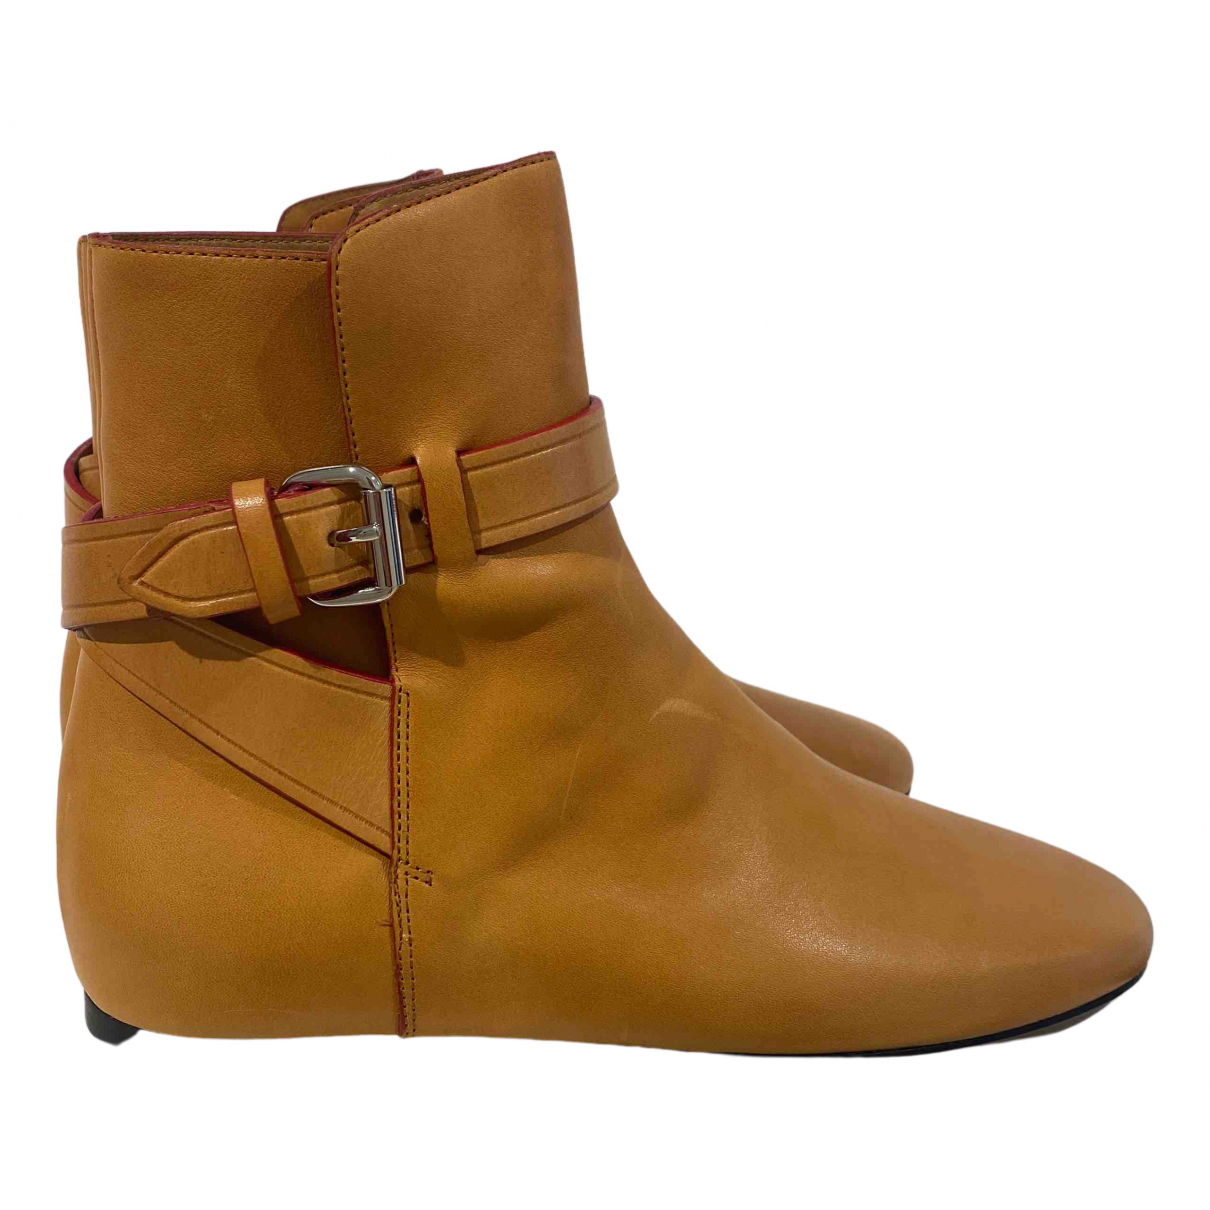 Isabel Marant N Brown Leather Ankle boots for Women 38 EU